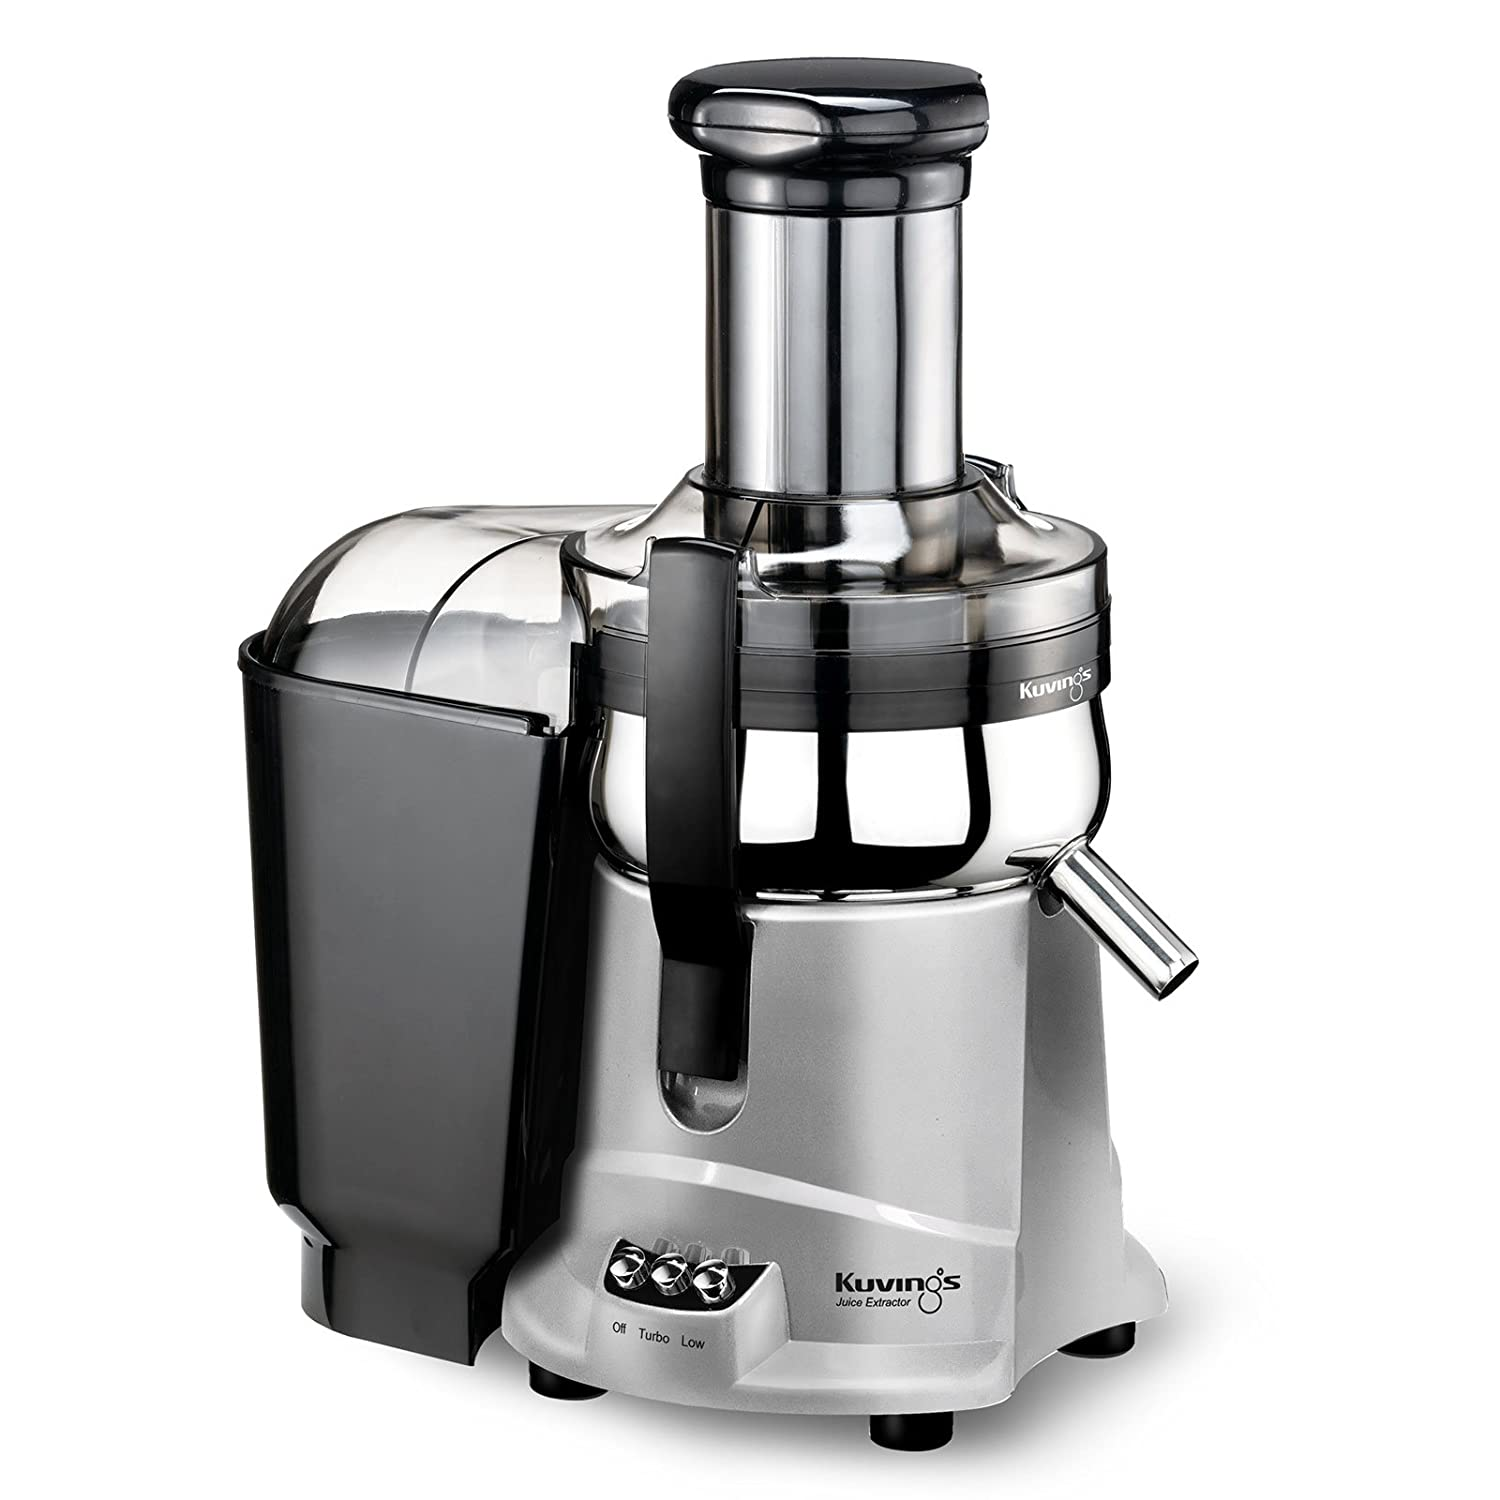 Top Masticating Juicers 2016 : Best Juicer Reviews 2016